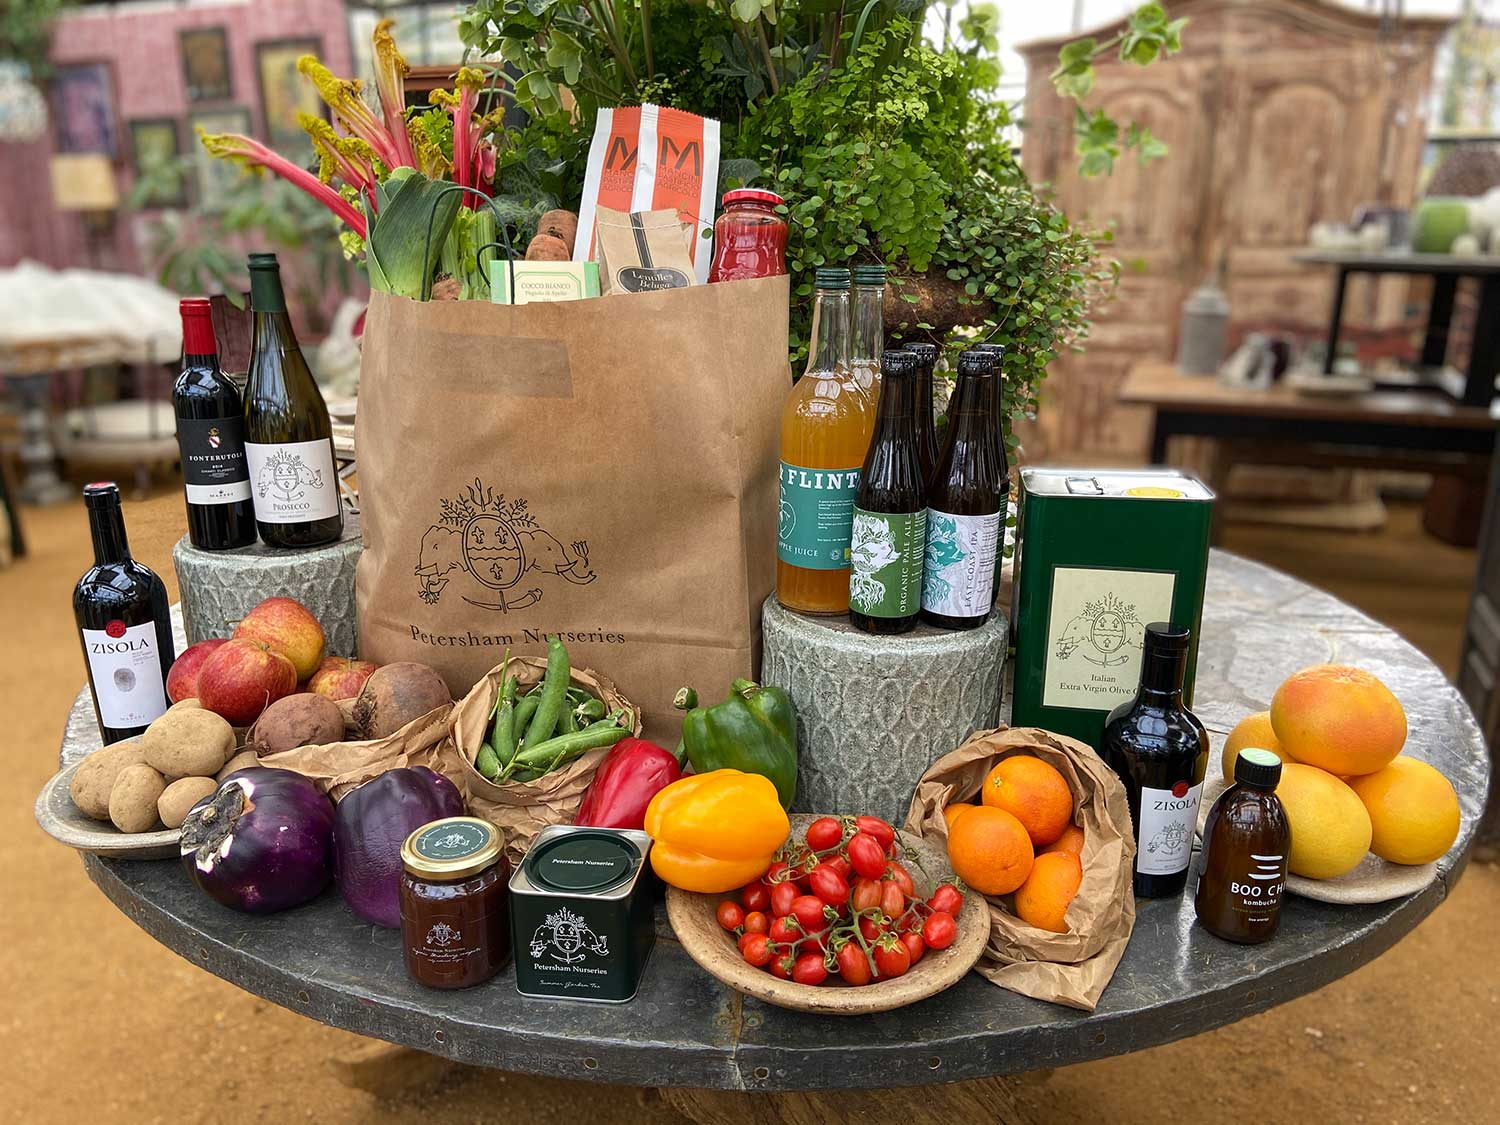 Petersham Nurseries is offering home delivery of the finest quality groceries